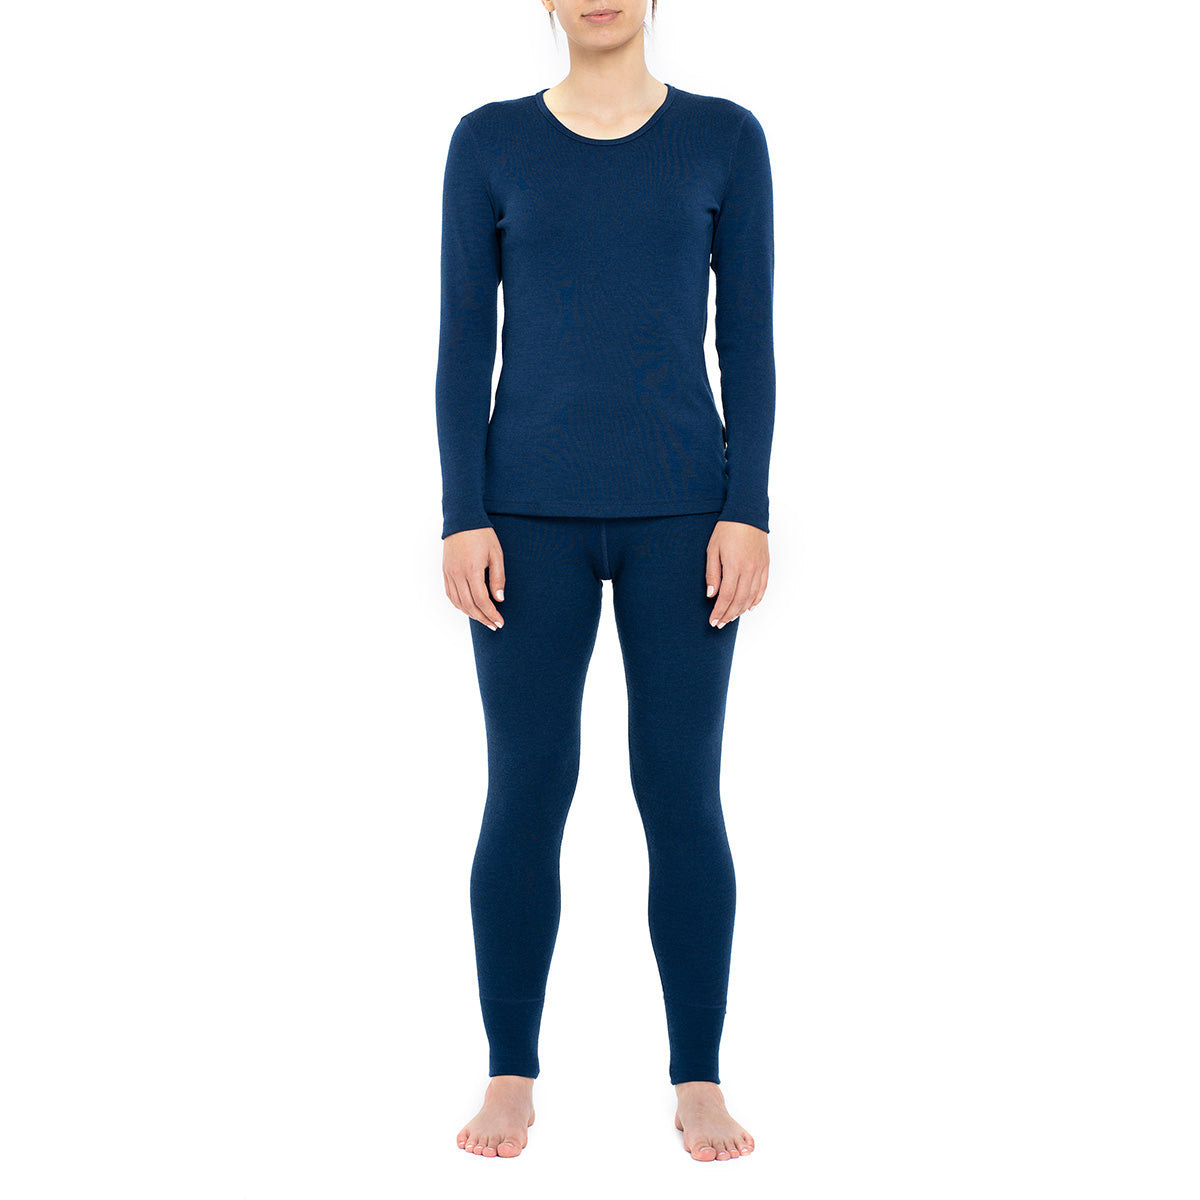 Women's Long Sleeve Set 250gsm Merino Wool Dark Blue